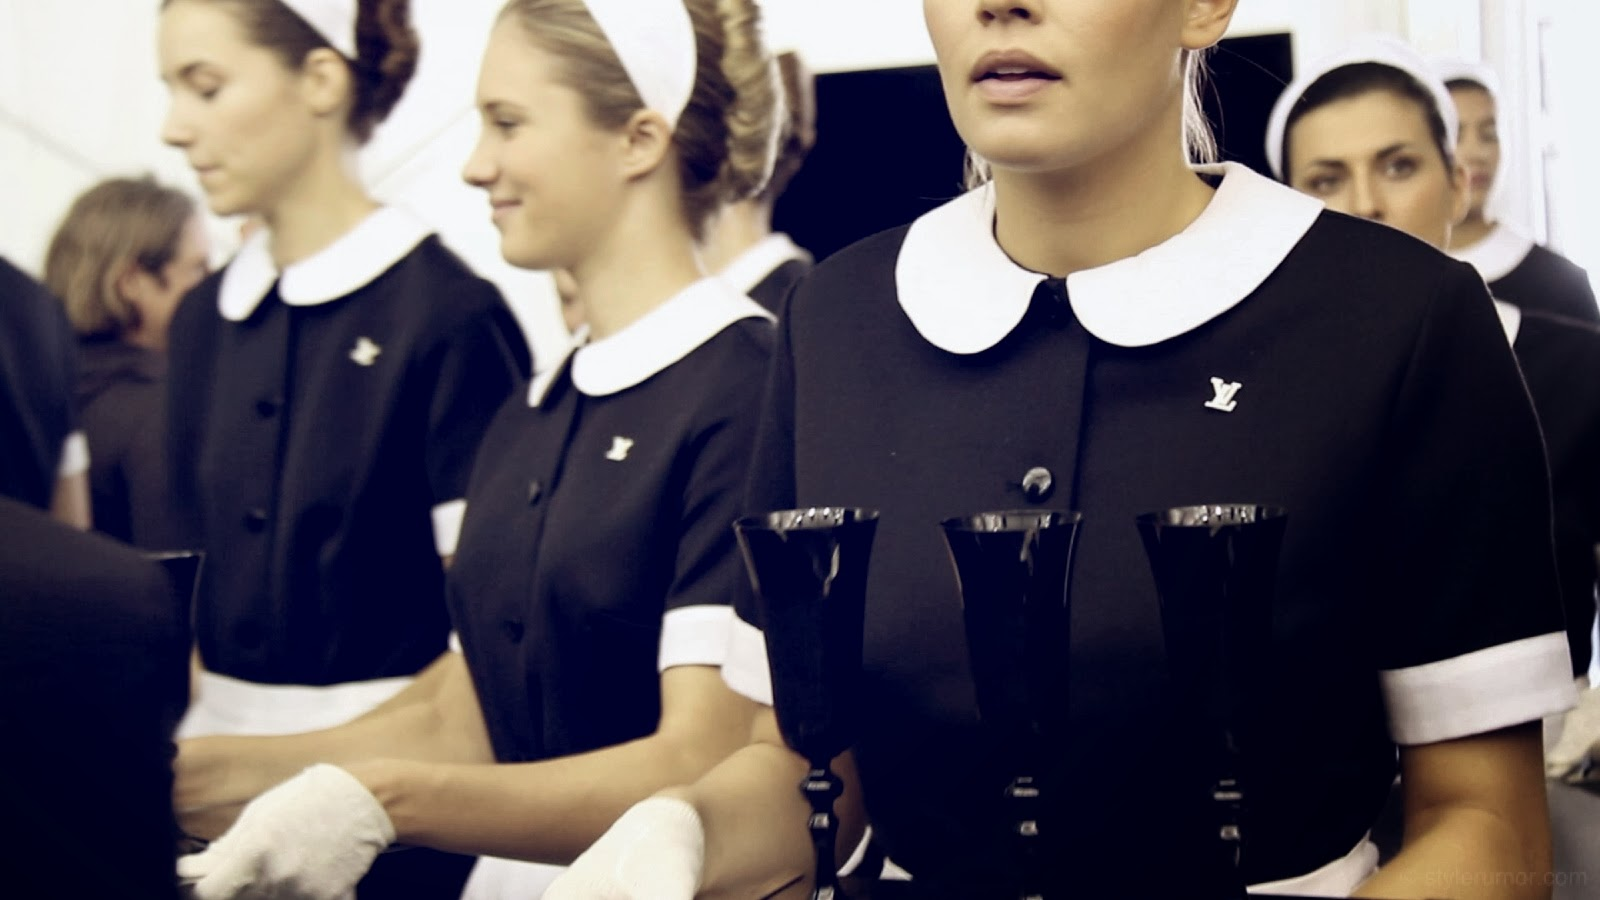 Best french maid uniform ideas on pinterest french maid 2